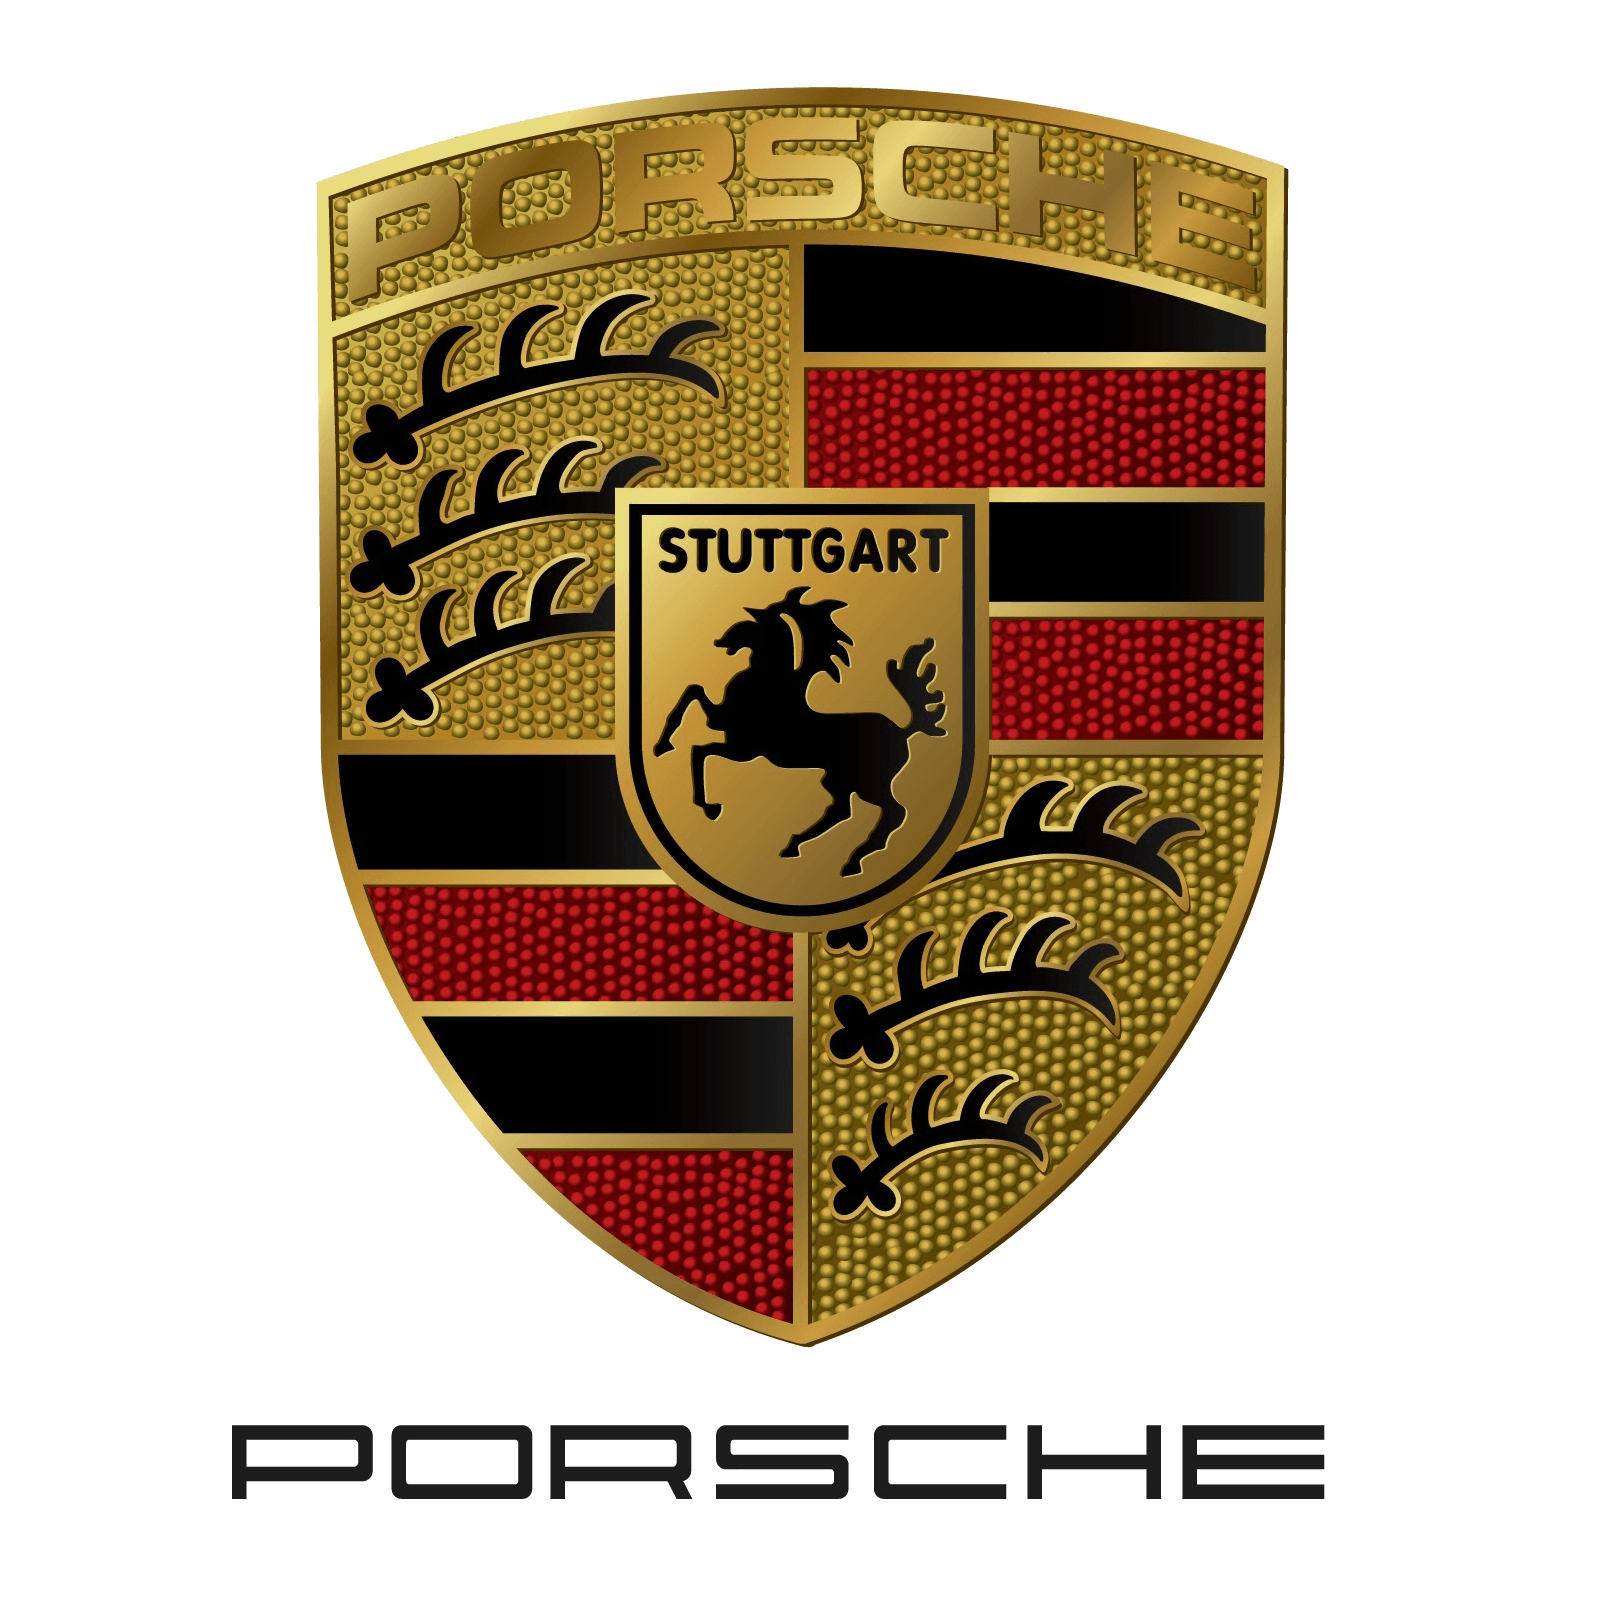 Porsche Logo - Porsche Logo, Porsche Car Symbol Meaning and History | Car Brand ...